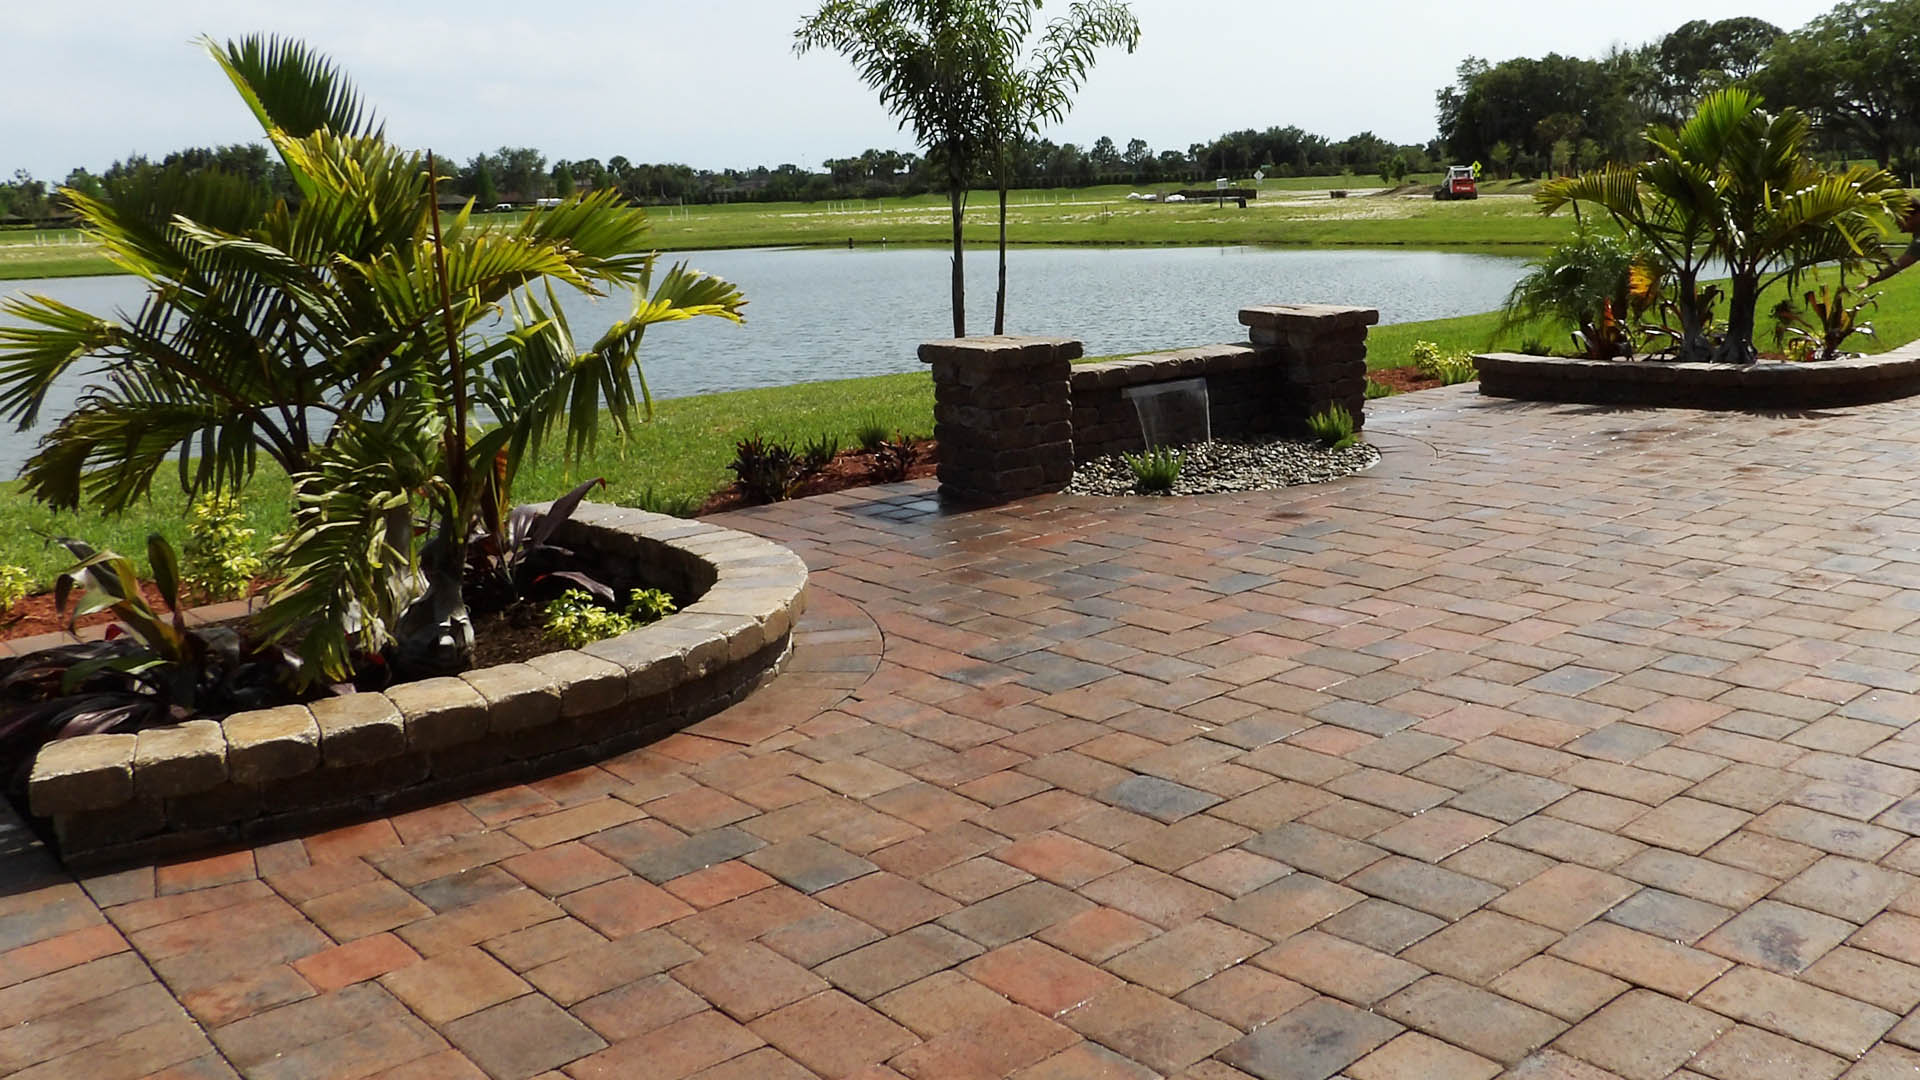 Custom paver patio and waterfall by Three Seasons in Palmetto, FL.